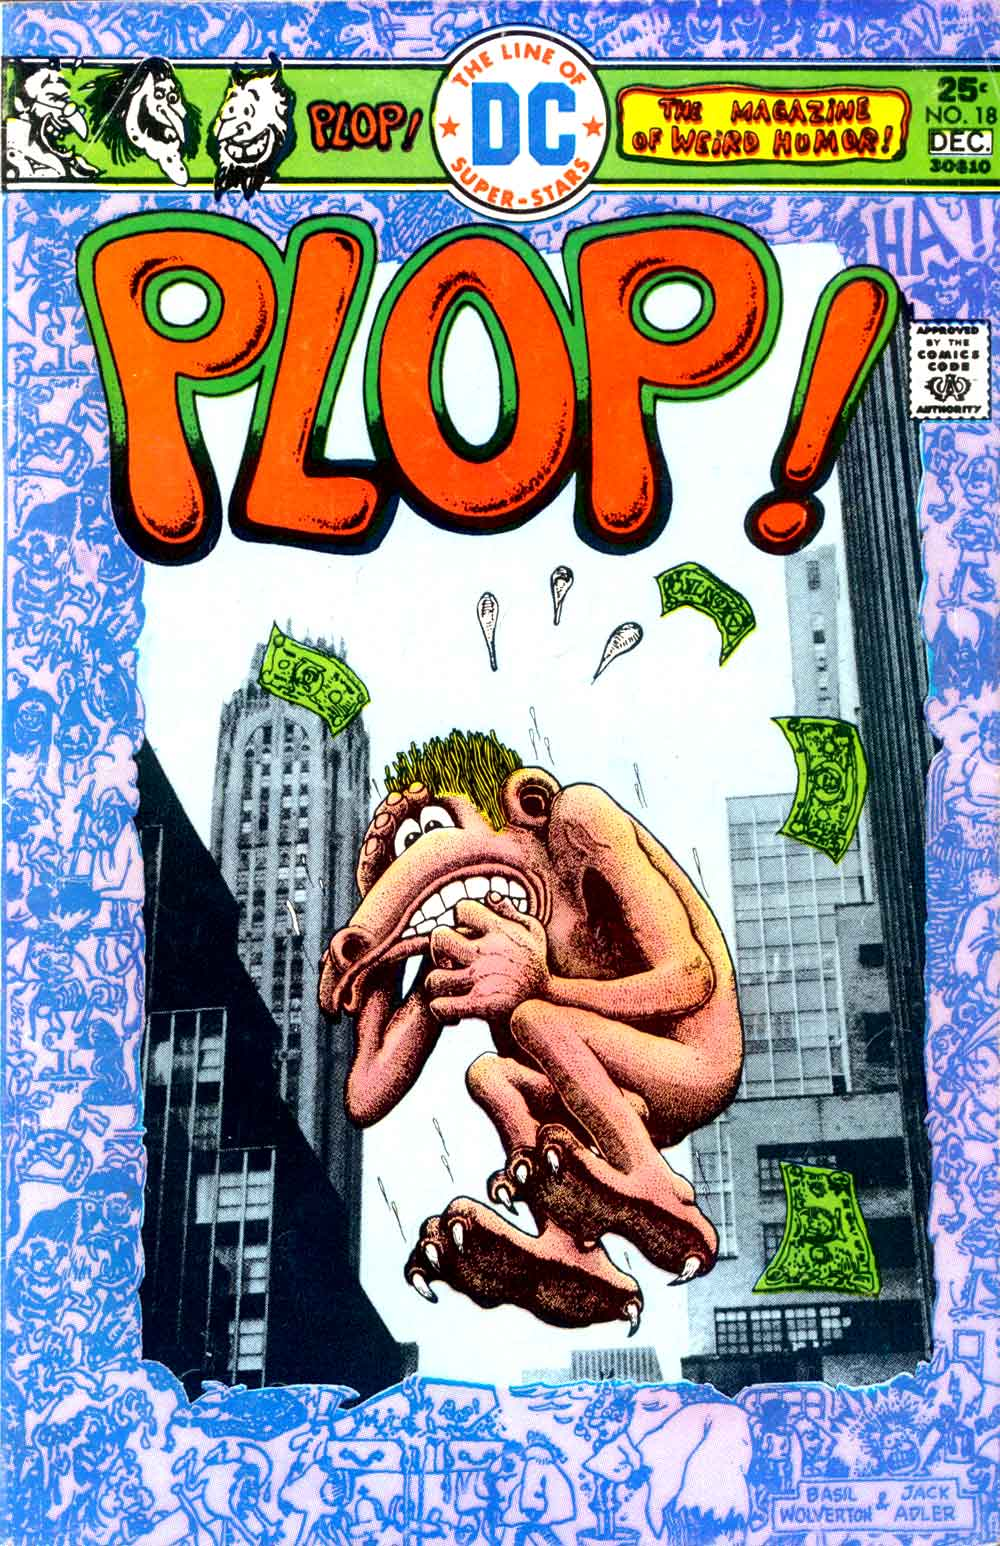 Plop v1 #18 dc 1970s bronze age comic book cover art by Basil Wolverton